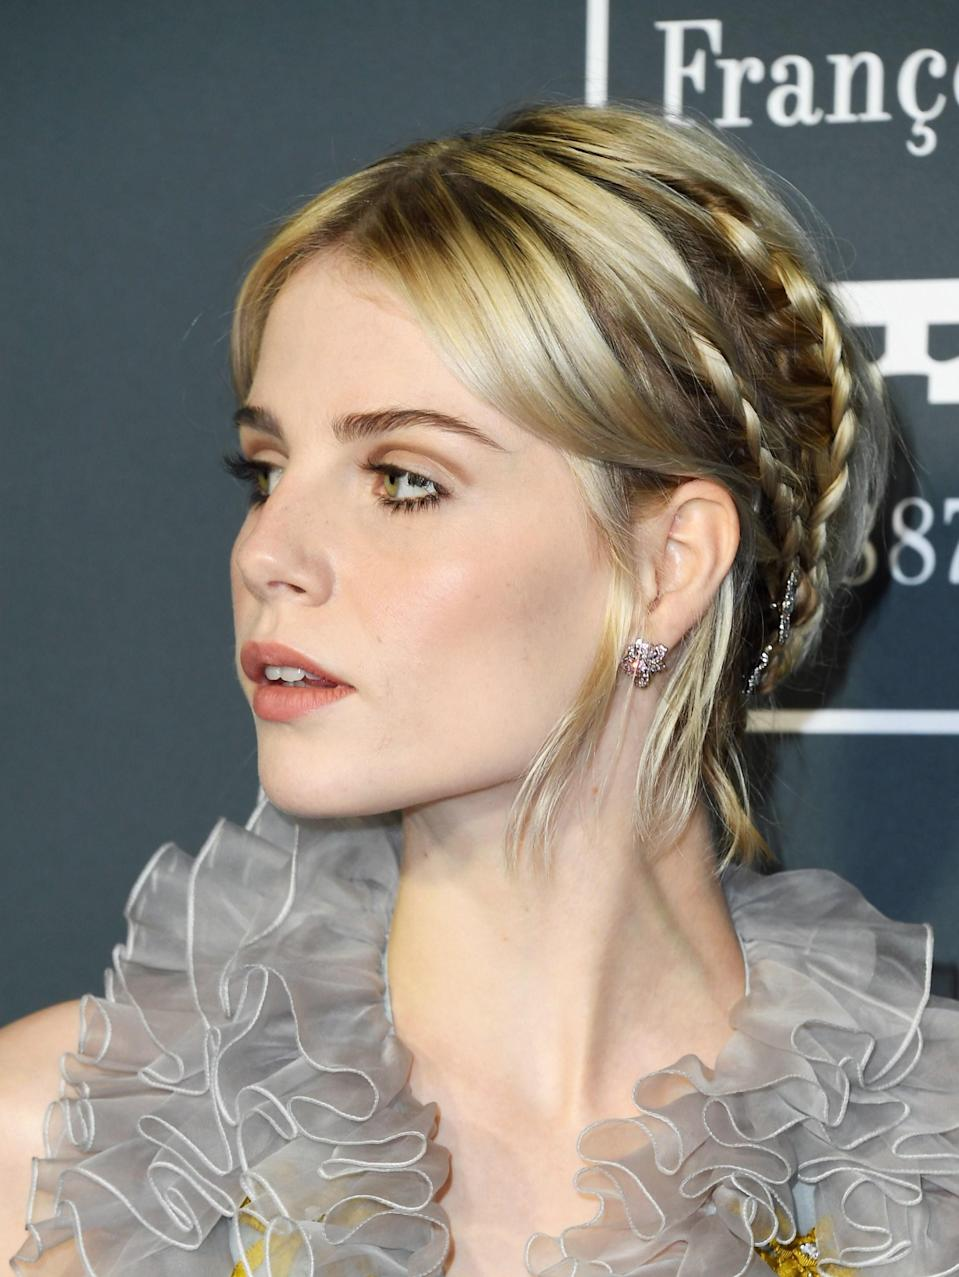 "Lucy Boynton's creamy blond color is basically a lesson in tones. ""It works with all skin tones because of the subtle warm and cool reflects,"" says <a href=""https://www.instagram.com/minkimcolorist/?hl=en"" rel=""nofollow noopener"" target=""_blank"" data-ylk=""slk:Min Kim"" class=""link rapid-noclick-resp"">Min Kim</a>, senior colorist at <a href=""https://www.butterflystudiosalon.com/"" rel=""nofollow noopener"" target=""_blank"" data-ylk=""slk:Butterfly Studio Salon"" class=""link rapid-noclick-resp"">Butterfly Studio Salon</a>. ""If you're on the darker shade of blond, ask for a beige version—which is deeper and just as complementary for all skin tones."""